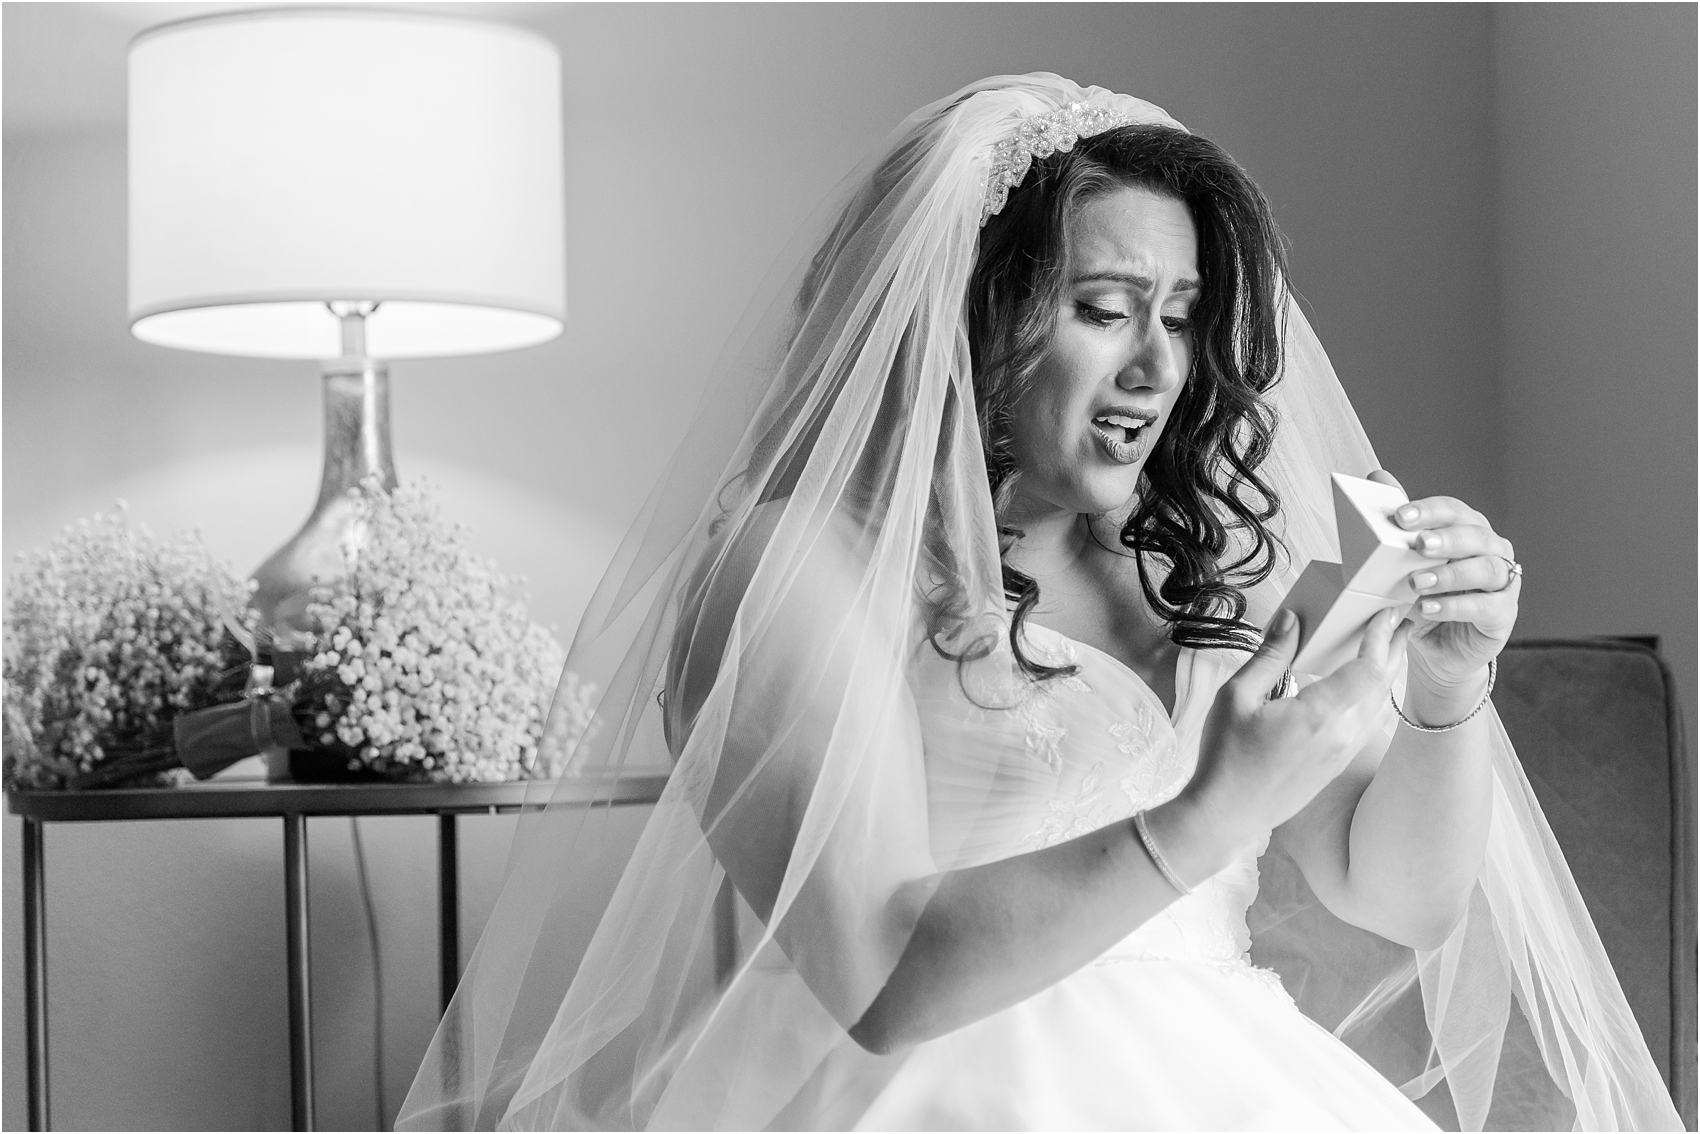 emotional-candid-romantic-wedding-photos-in-detroit-chicago-northern-michigan-by-courtney-carolyn-photography_0008.jpg